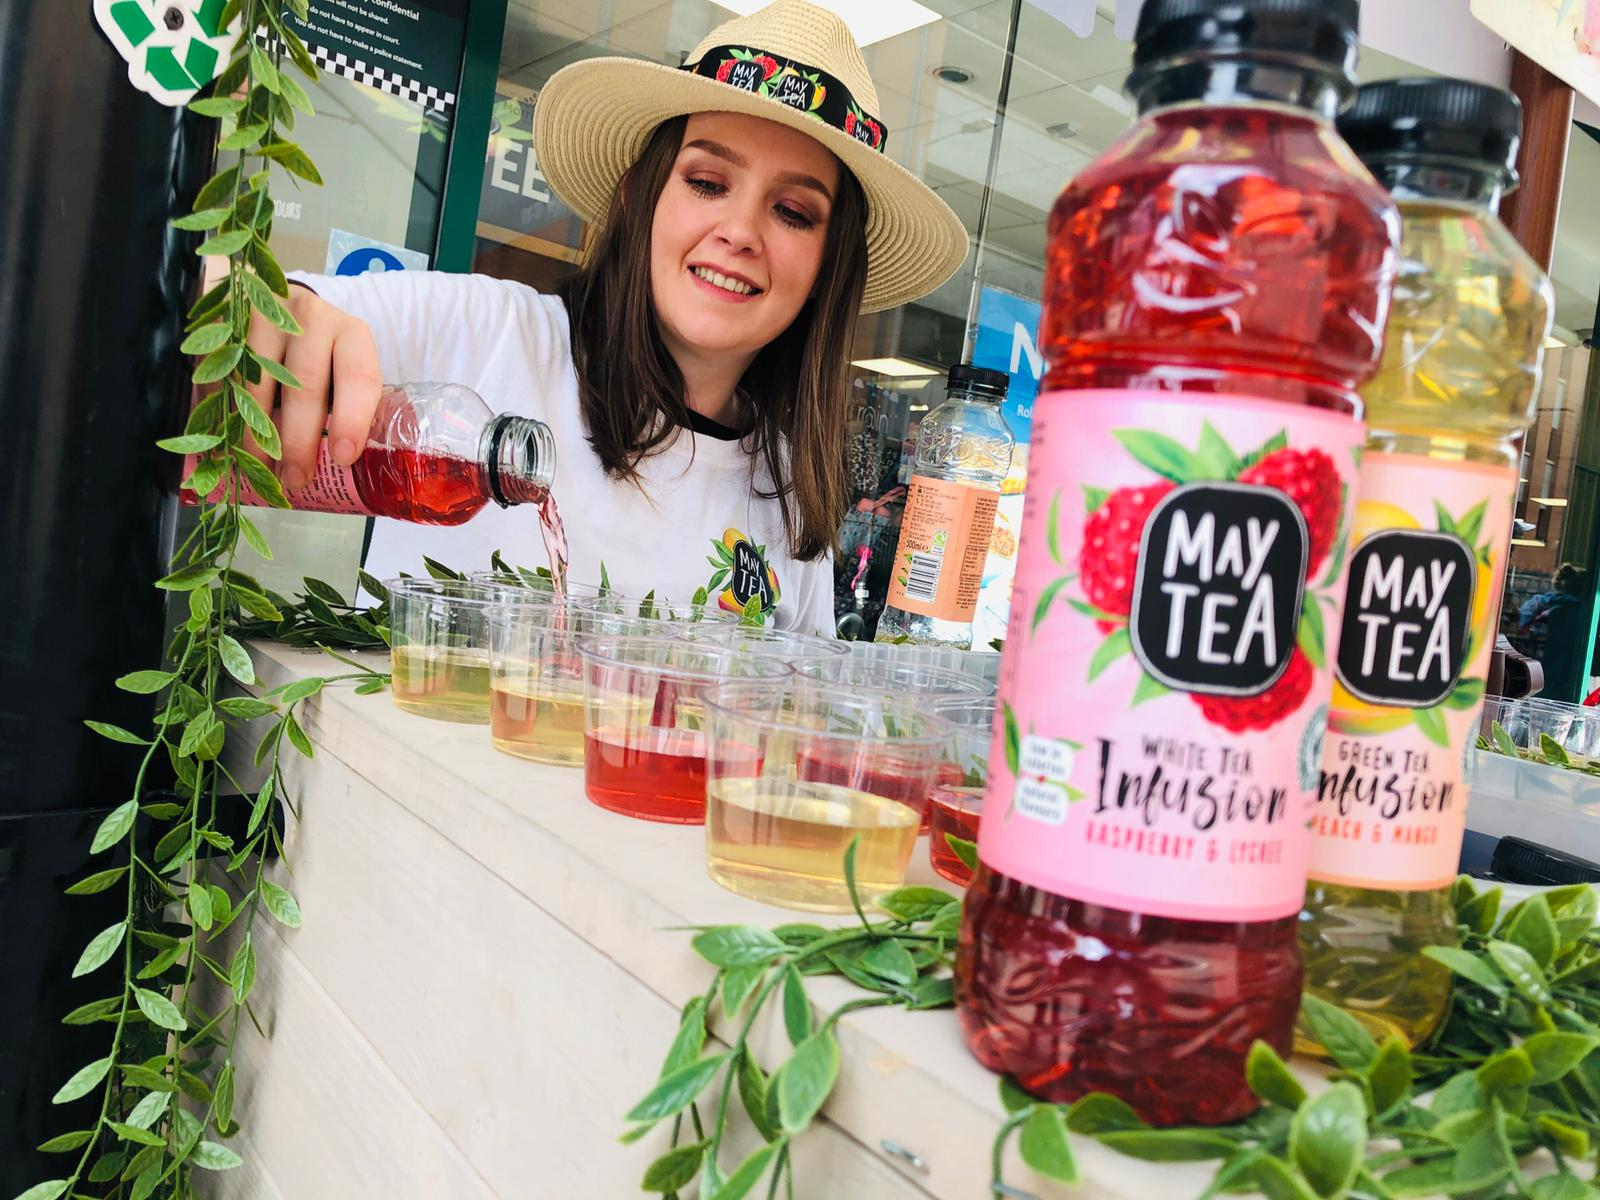 Experiential Marketing Product Sampling Maytea in front of Morrisons / BP / M&S Food & WHSmith Travel